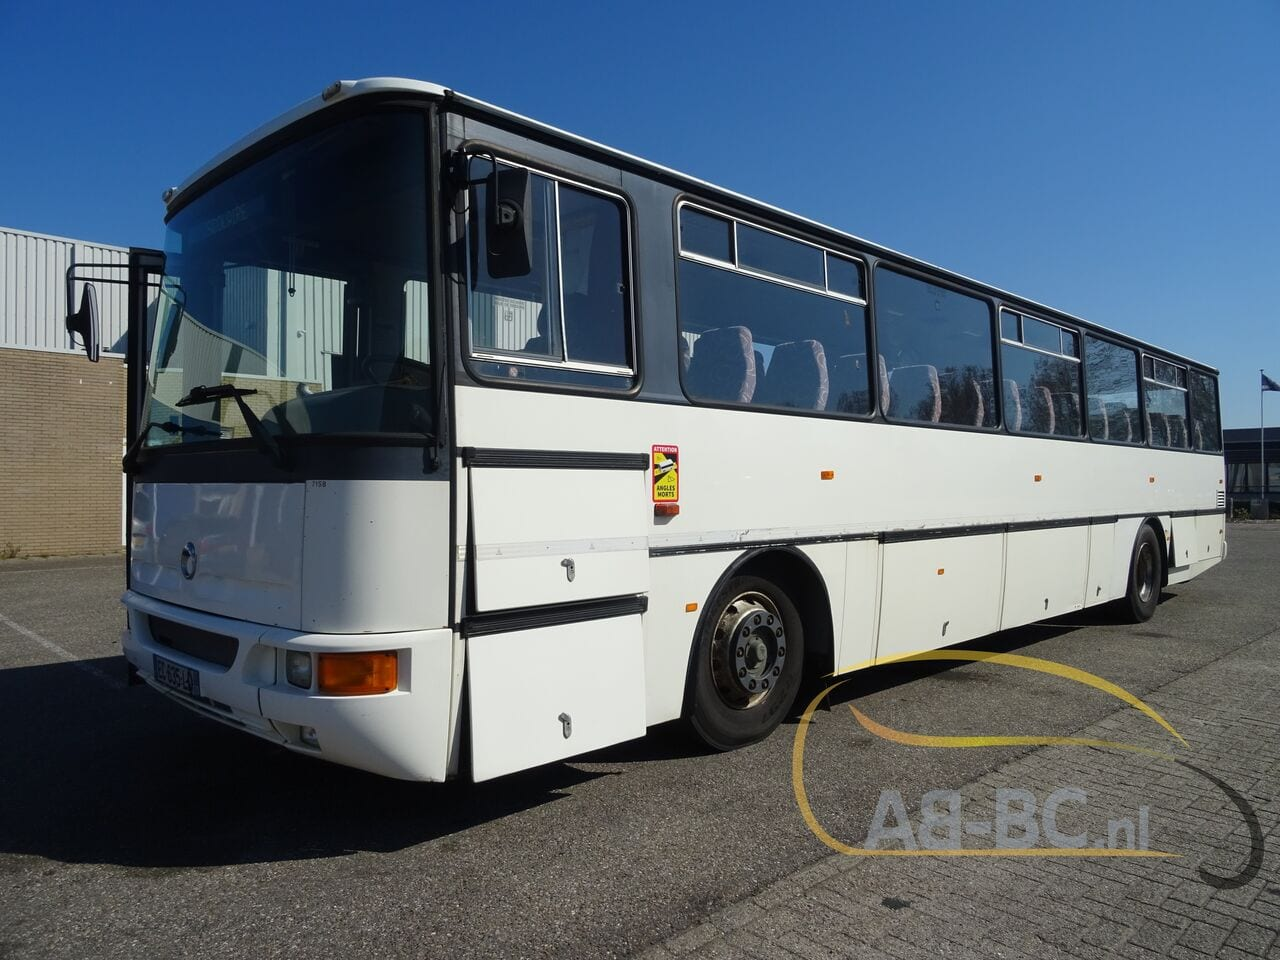 interurban-busIVECO-Irisbus-Recreo-59-Seats---1619430661323259516_big_7dc85e0f9a90e60c2fa4dc79e2db817d--21042612454255740900